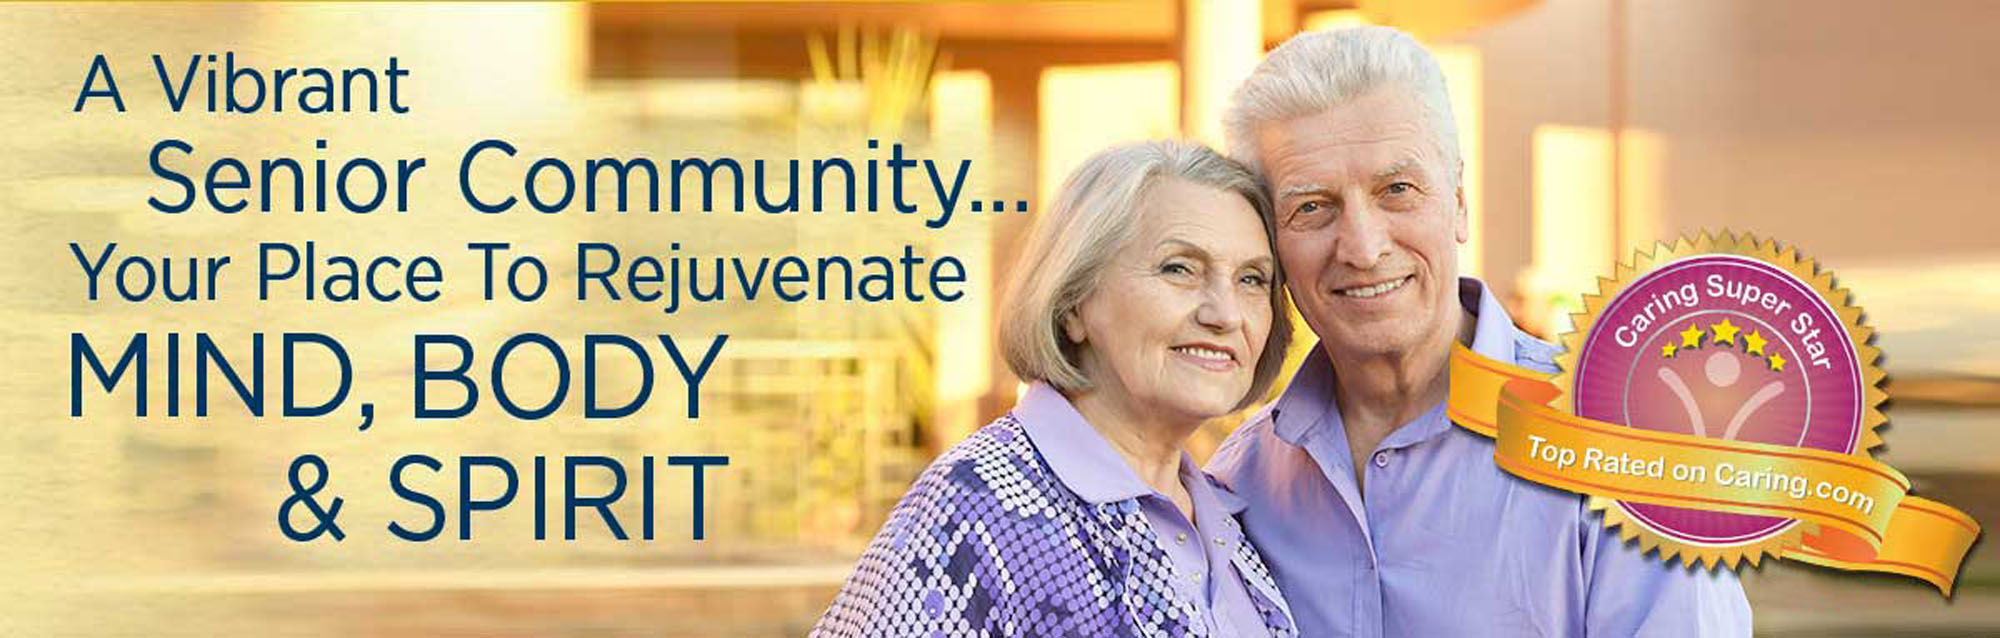 Assisted Living Community Cabot Cove of Largo - Clearwater Area